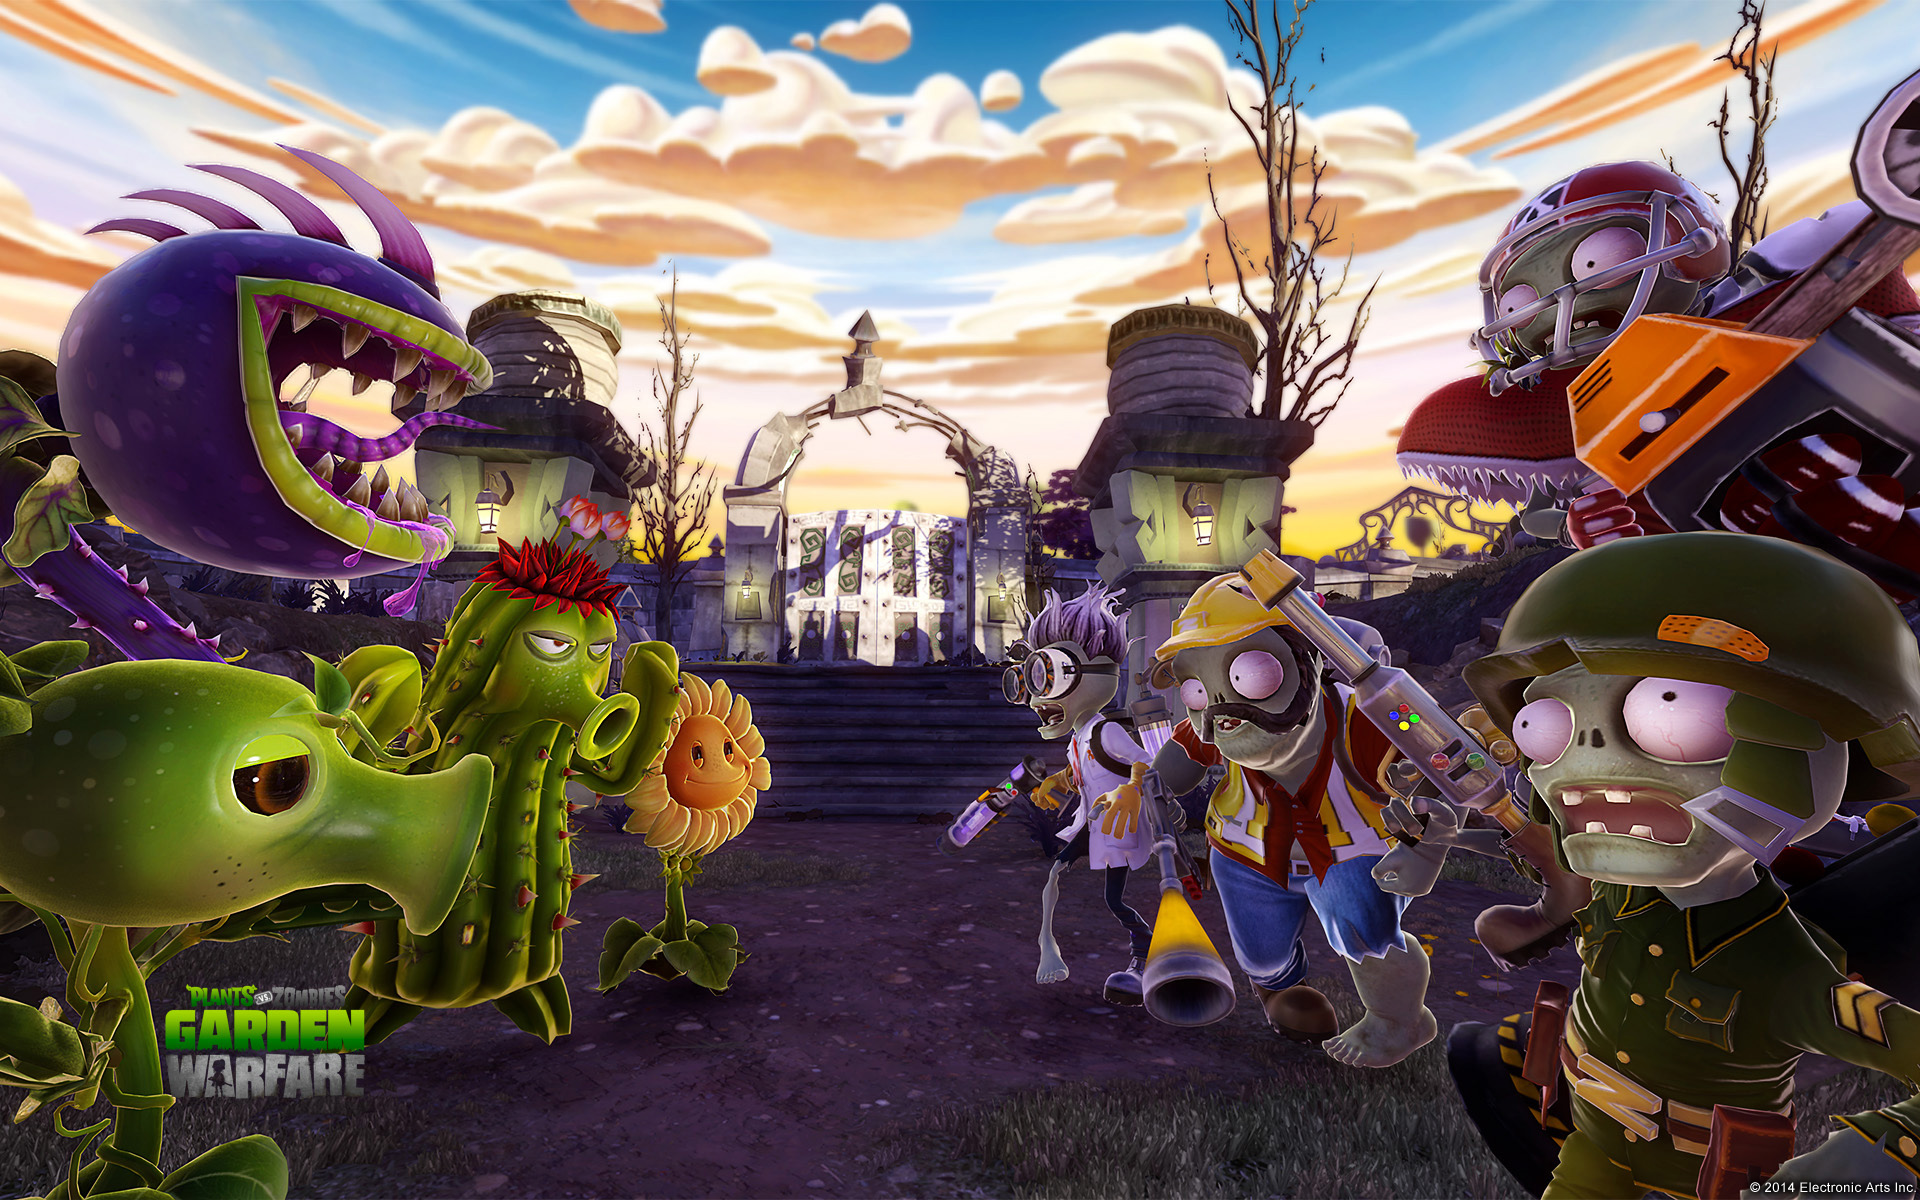 8 Hd Plants Vs Zombies Garden Warfare Wallpapers